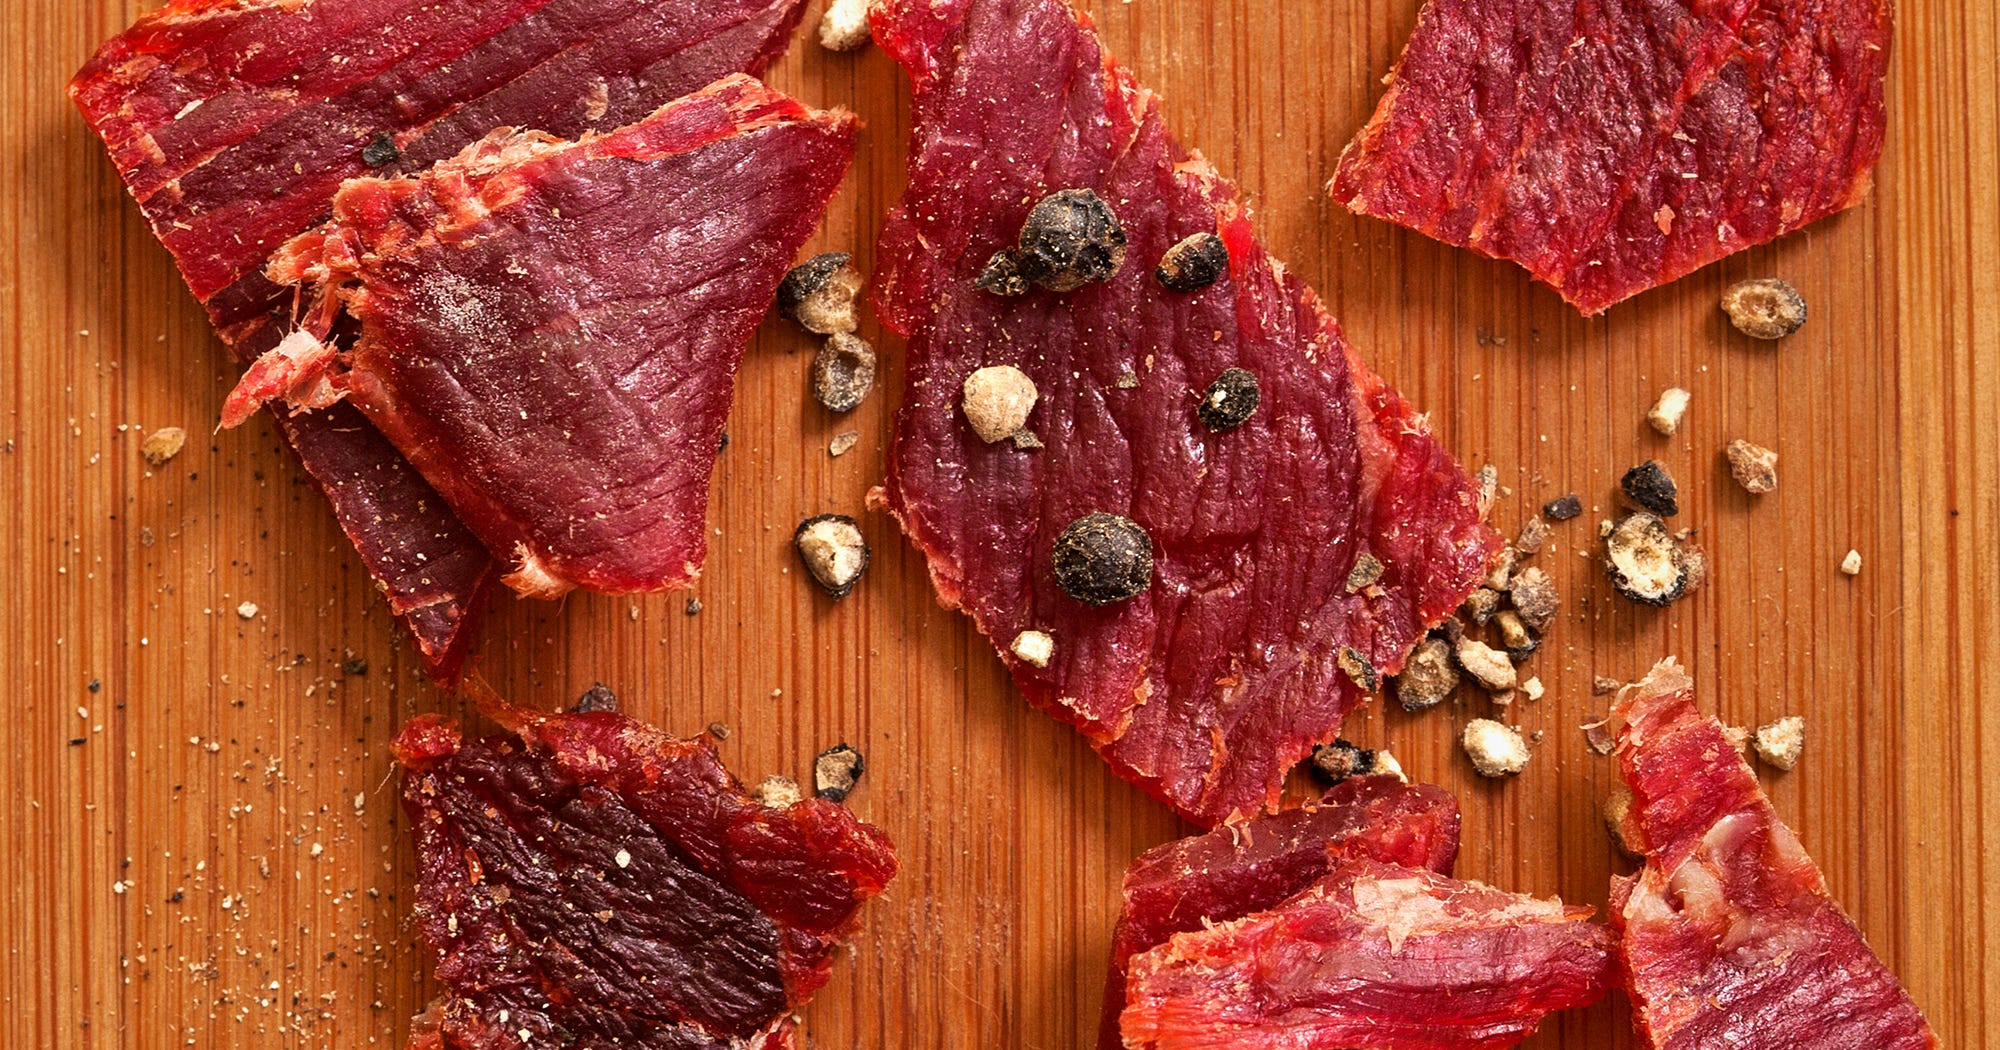 Is Beef Jerky Bad For You Or Just Misunderstood?